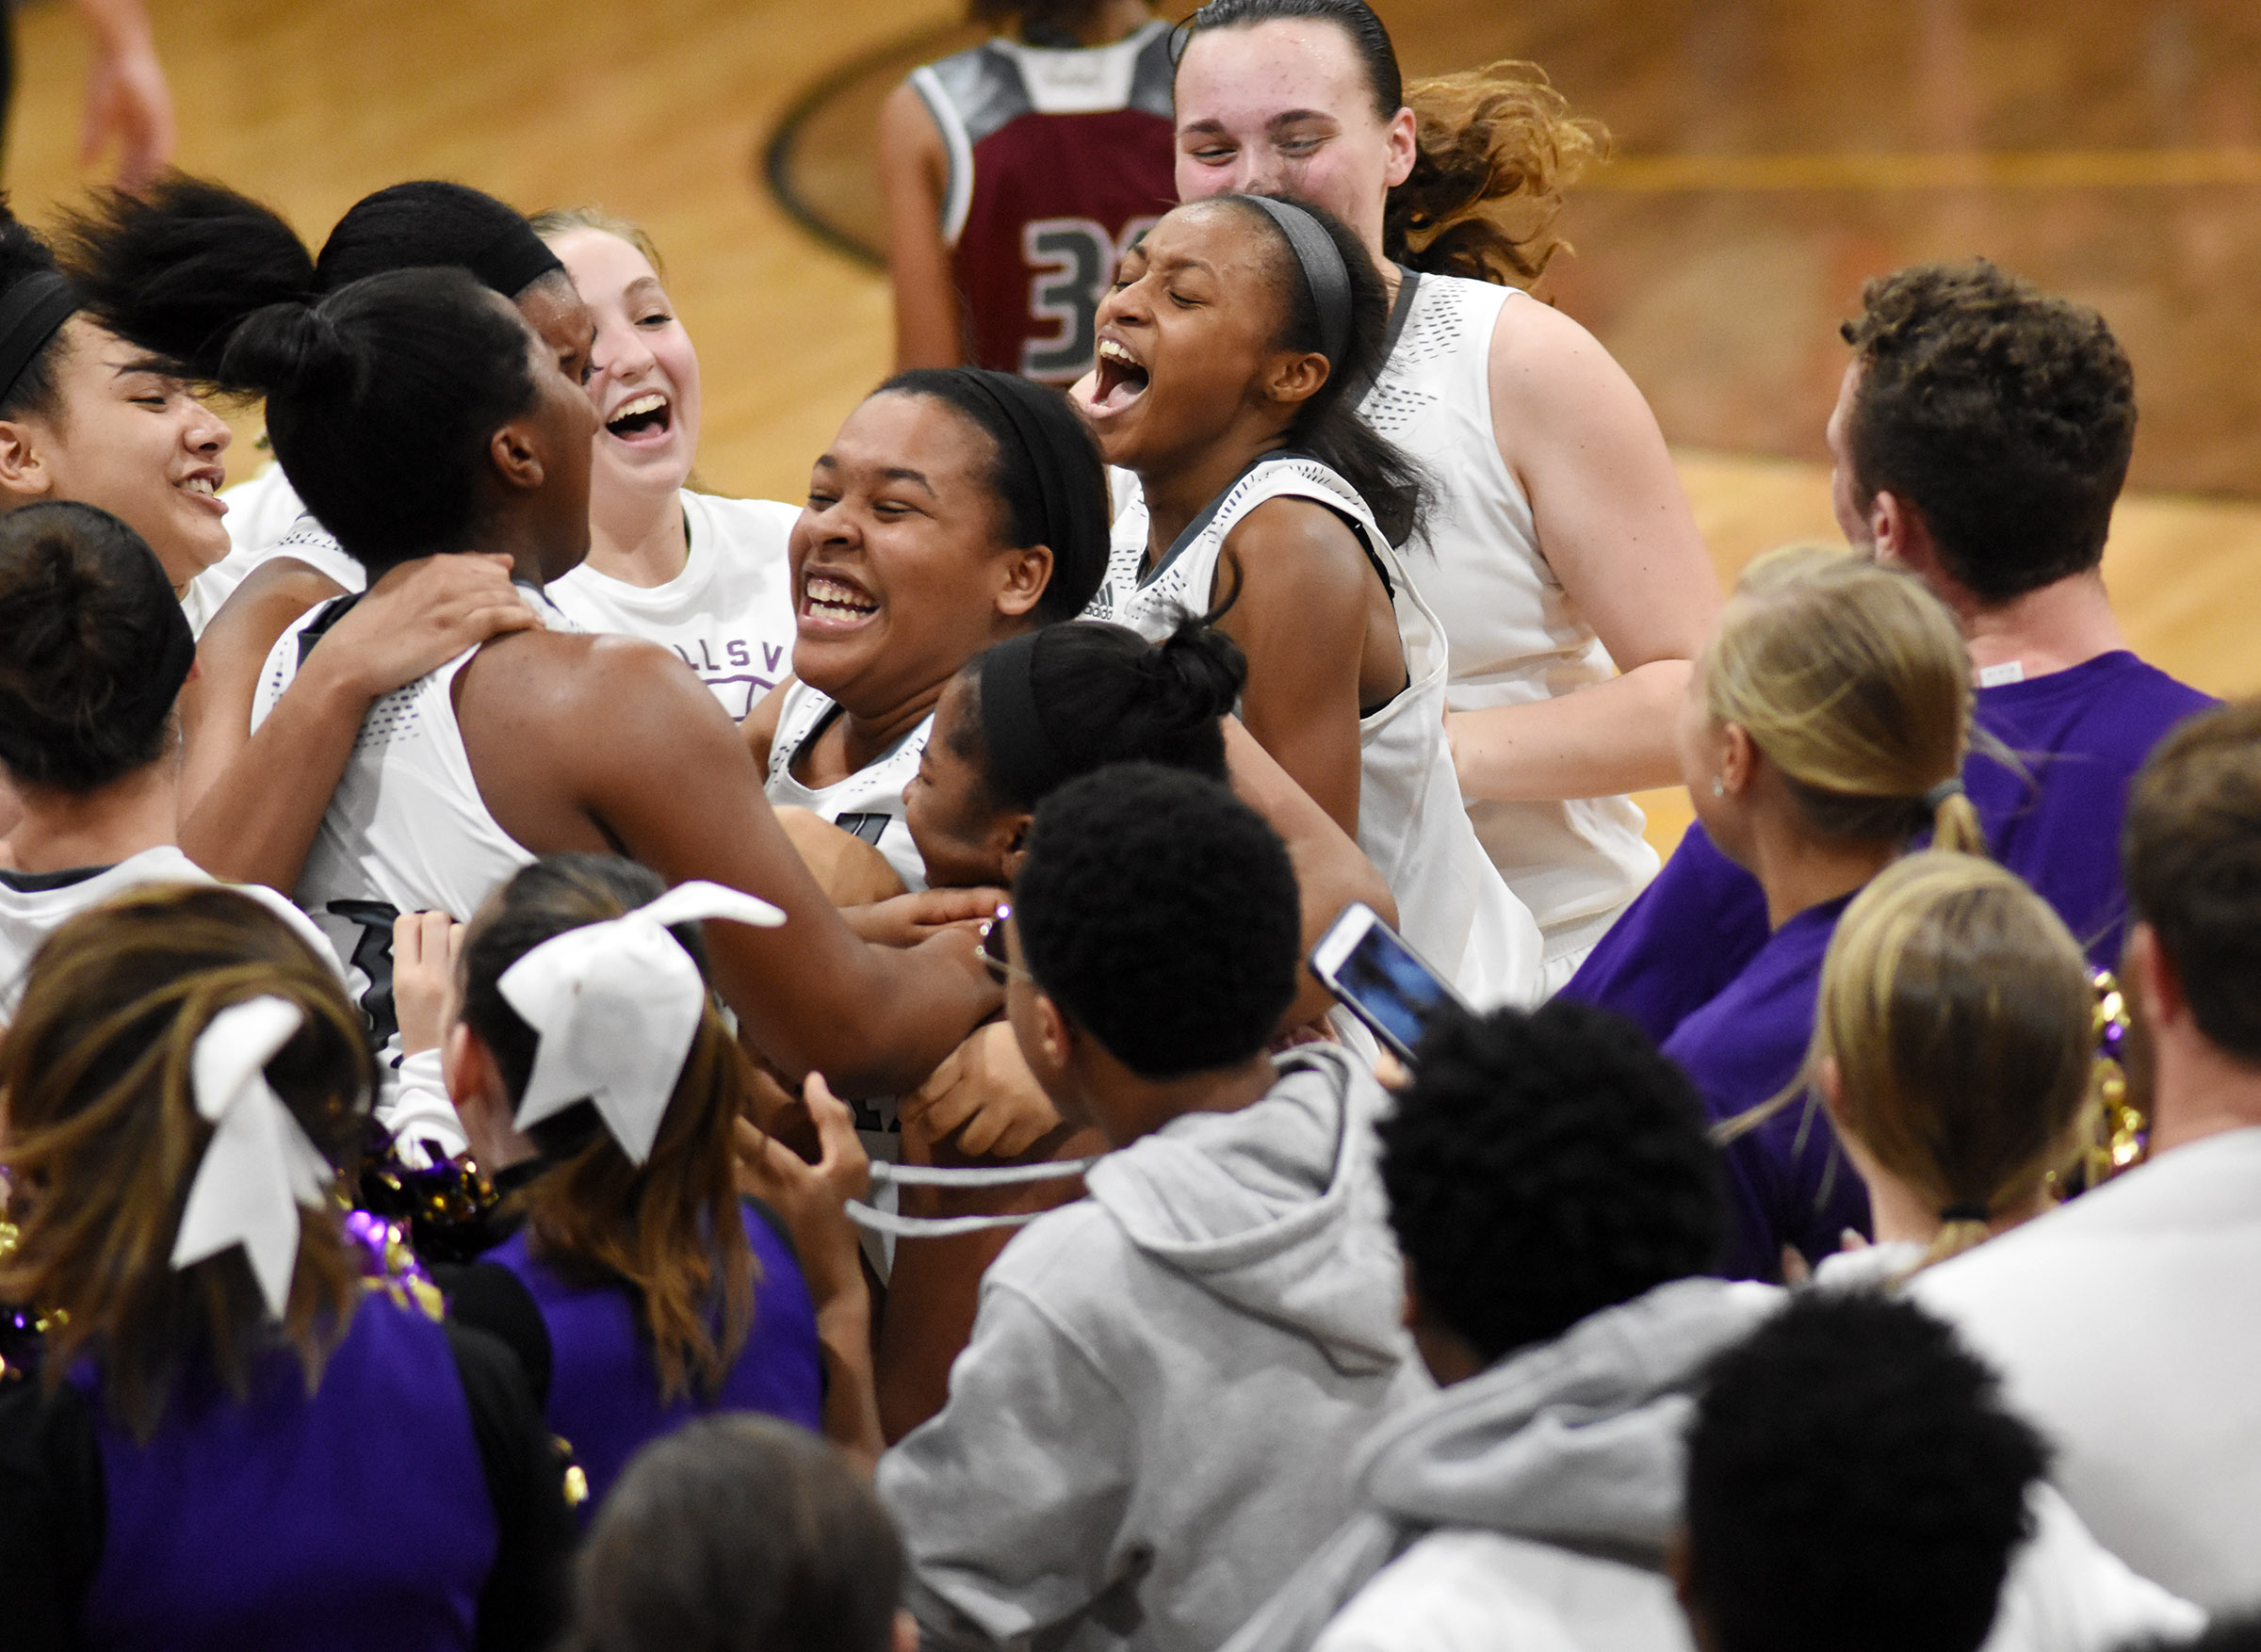 CHS girls' basketball players celebrate their win.